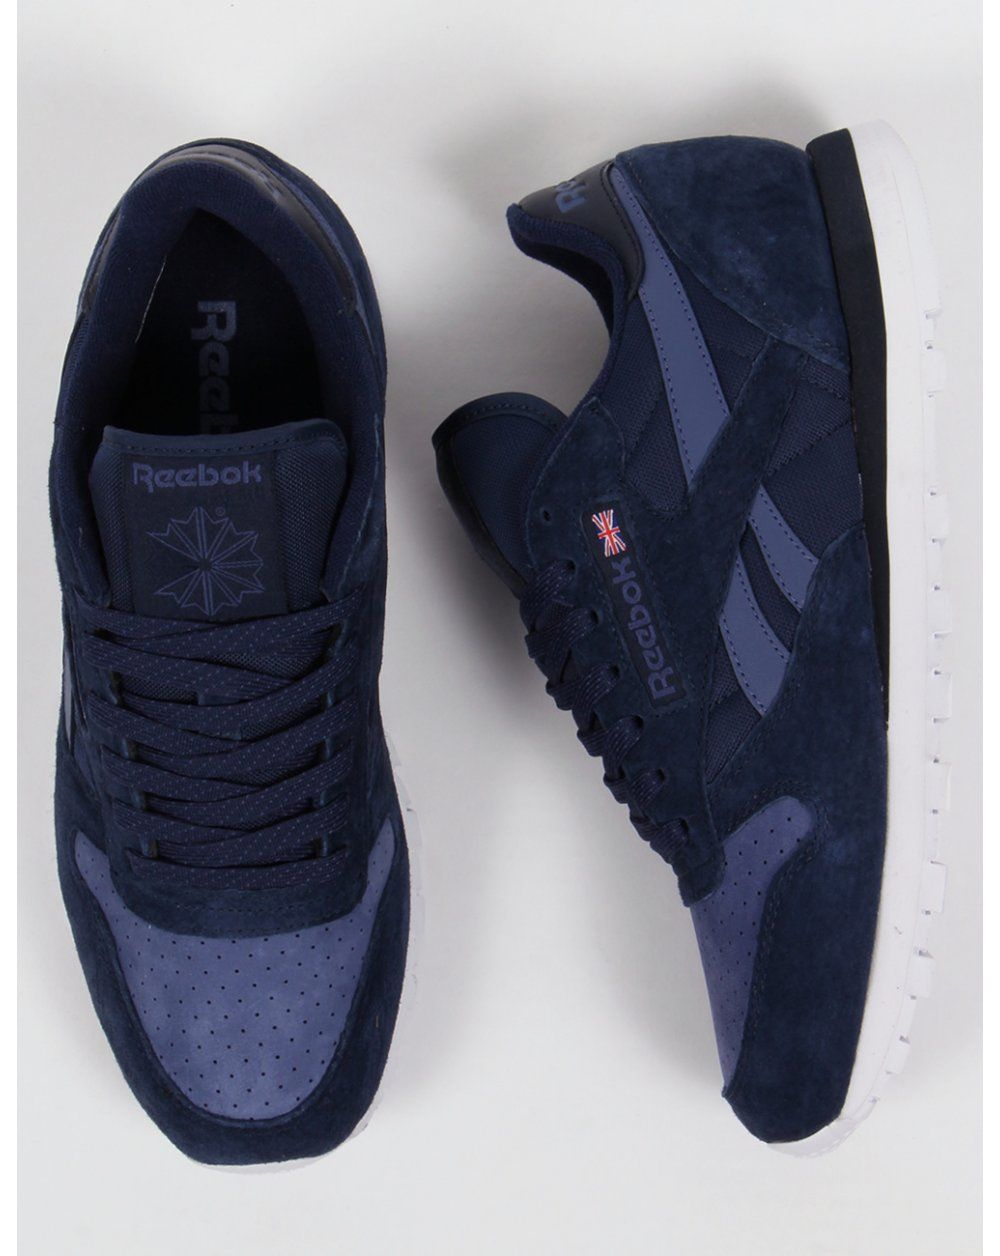 940cd609140d9 Reebok Classic Leather NP Trainers Navy/Midnight Blue | Projects to ...